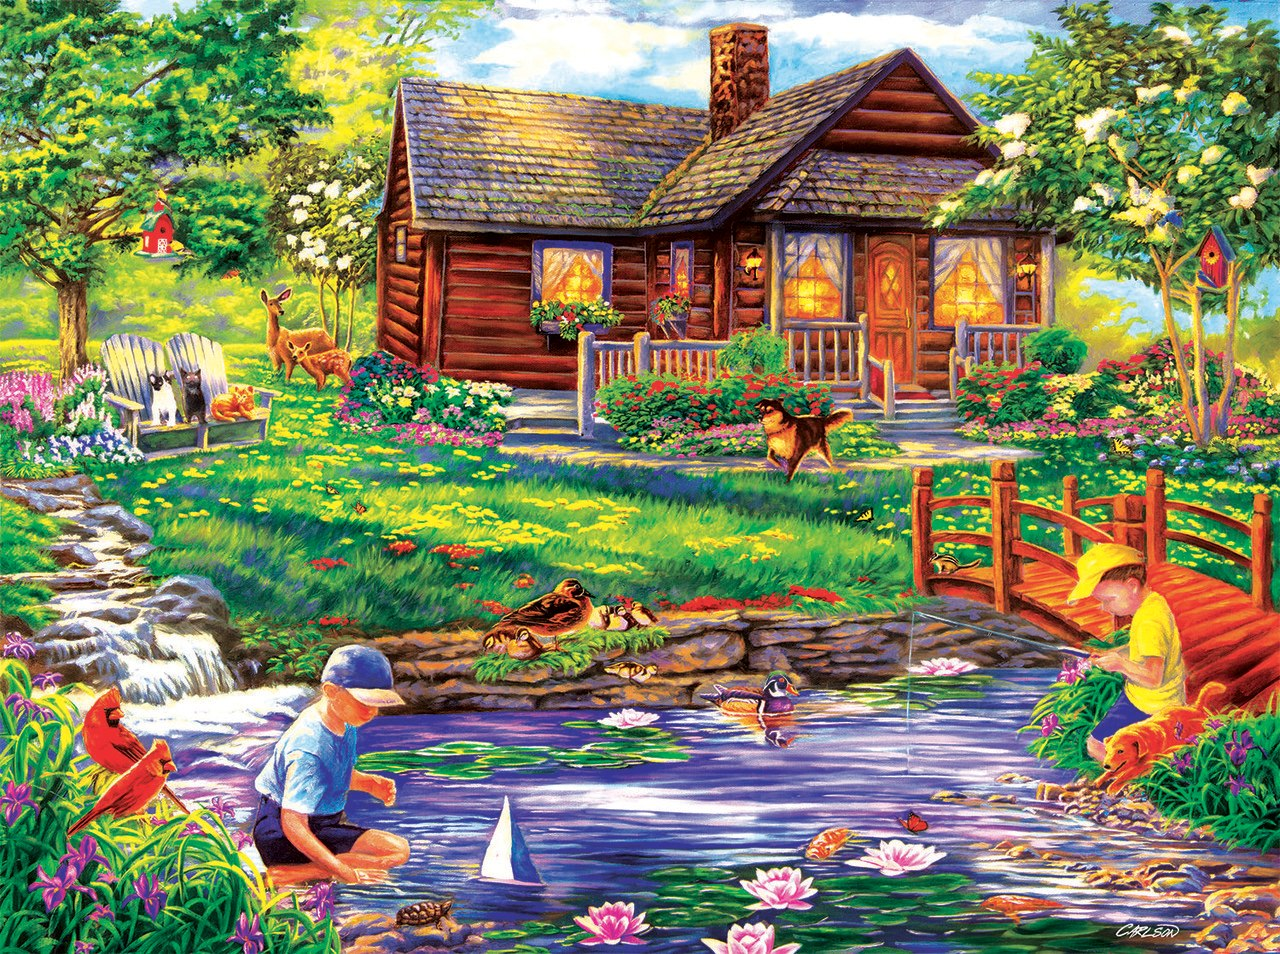 Summer Retreat - 1000pc Jigsaw Puzzle By Sunsout  			  					NEW